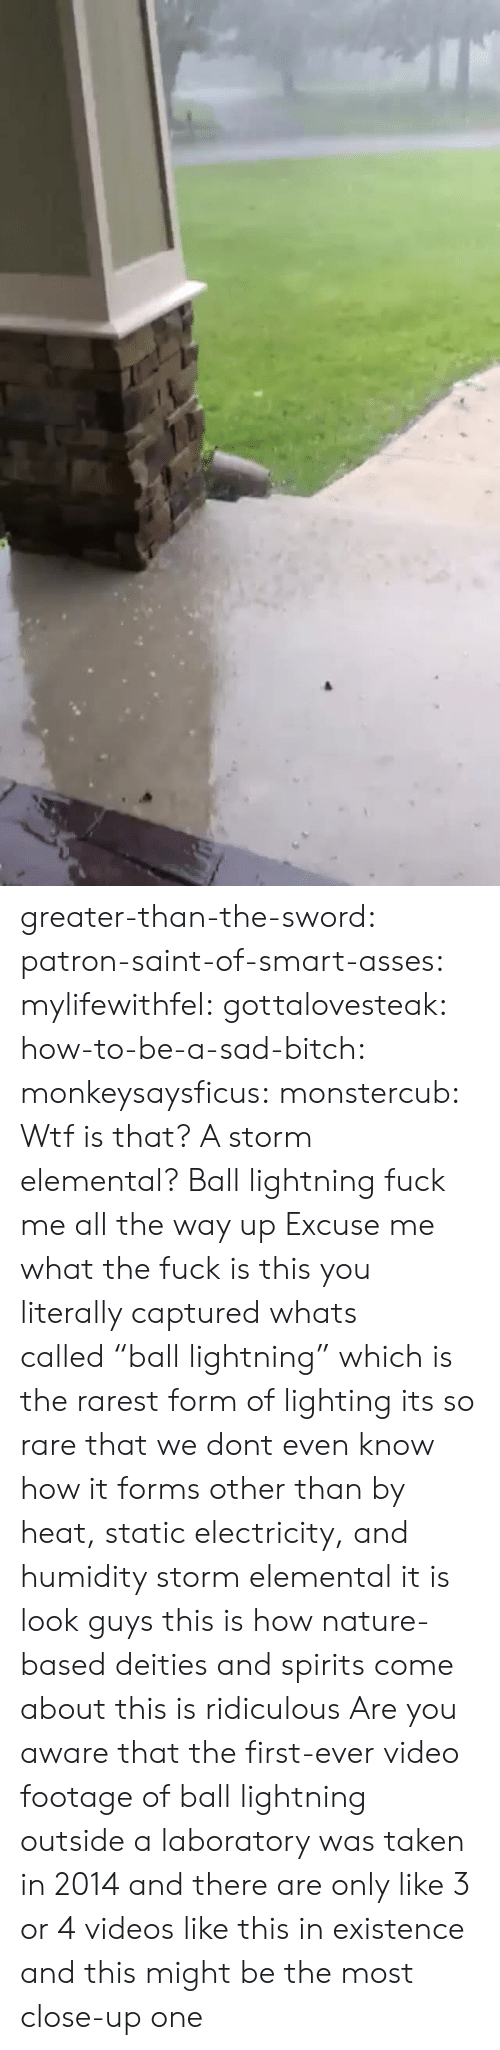 """Bitch, Taken, and Tumblr: greater-than-the-sword:  patron-saint-of-smart-asses:  mylifewithfel:  gottalovesteak:  how-to-be-a-sad-bitch:  monkeysaysficus:   monstercub: Wtf is that? A storm elemental?  Ball lightning fuck me all the way up   Excuse me what the fuck is this  you literally captured whats called""""ball lightning"""" which is the rarest form of lighting its so rare that we dont even know how it forms other than by heat, static electricity, and humidity  storm elemental it is  look guys this is how nature-based deities and spirits come about this is ridiculous  Are you aware that the first-ever video footage of ball lightning outside a laboratory was taken in 2014 and there are only like 3 or 4 videos like this in existence and this might be the most close-up one"""